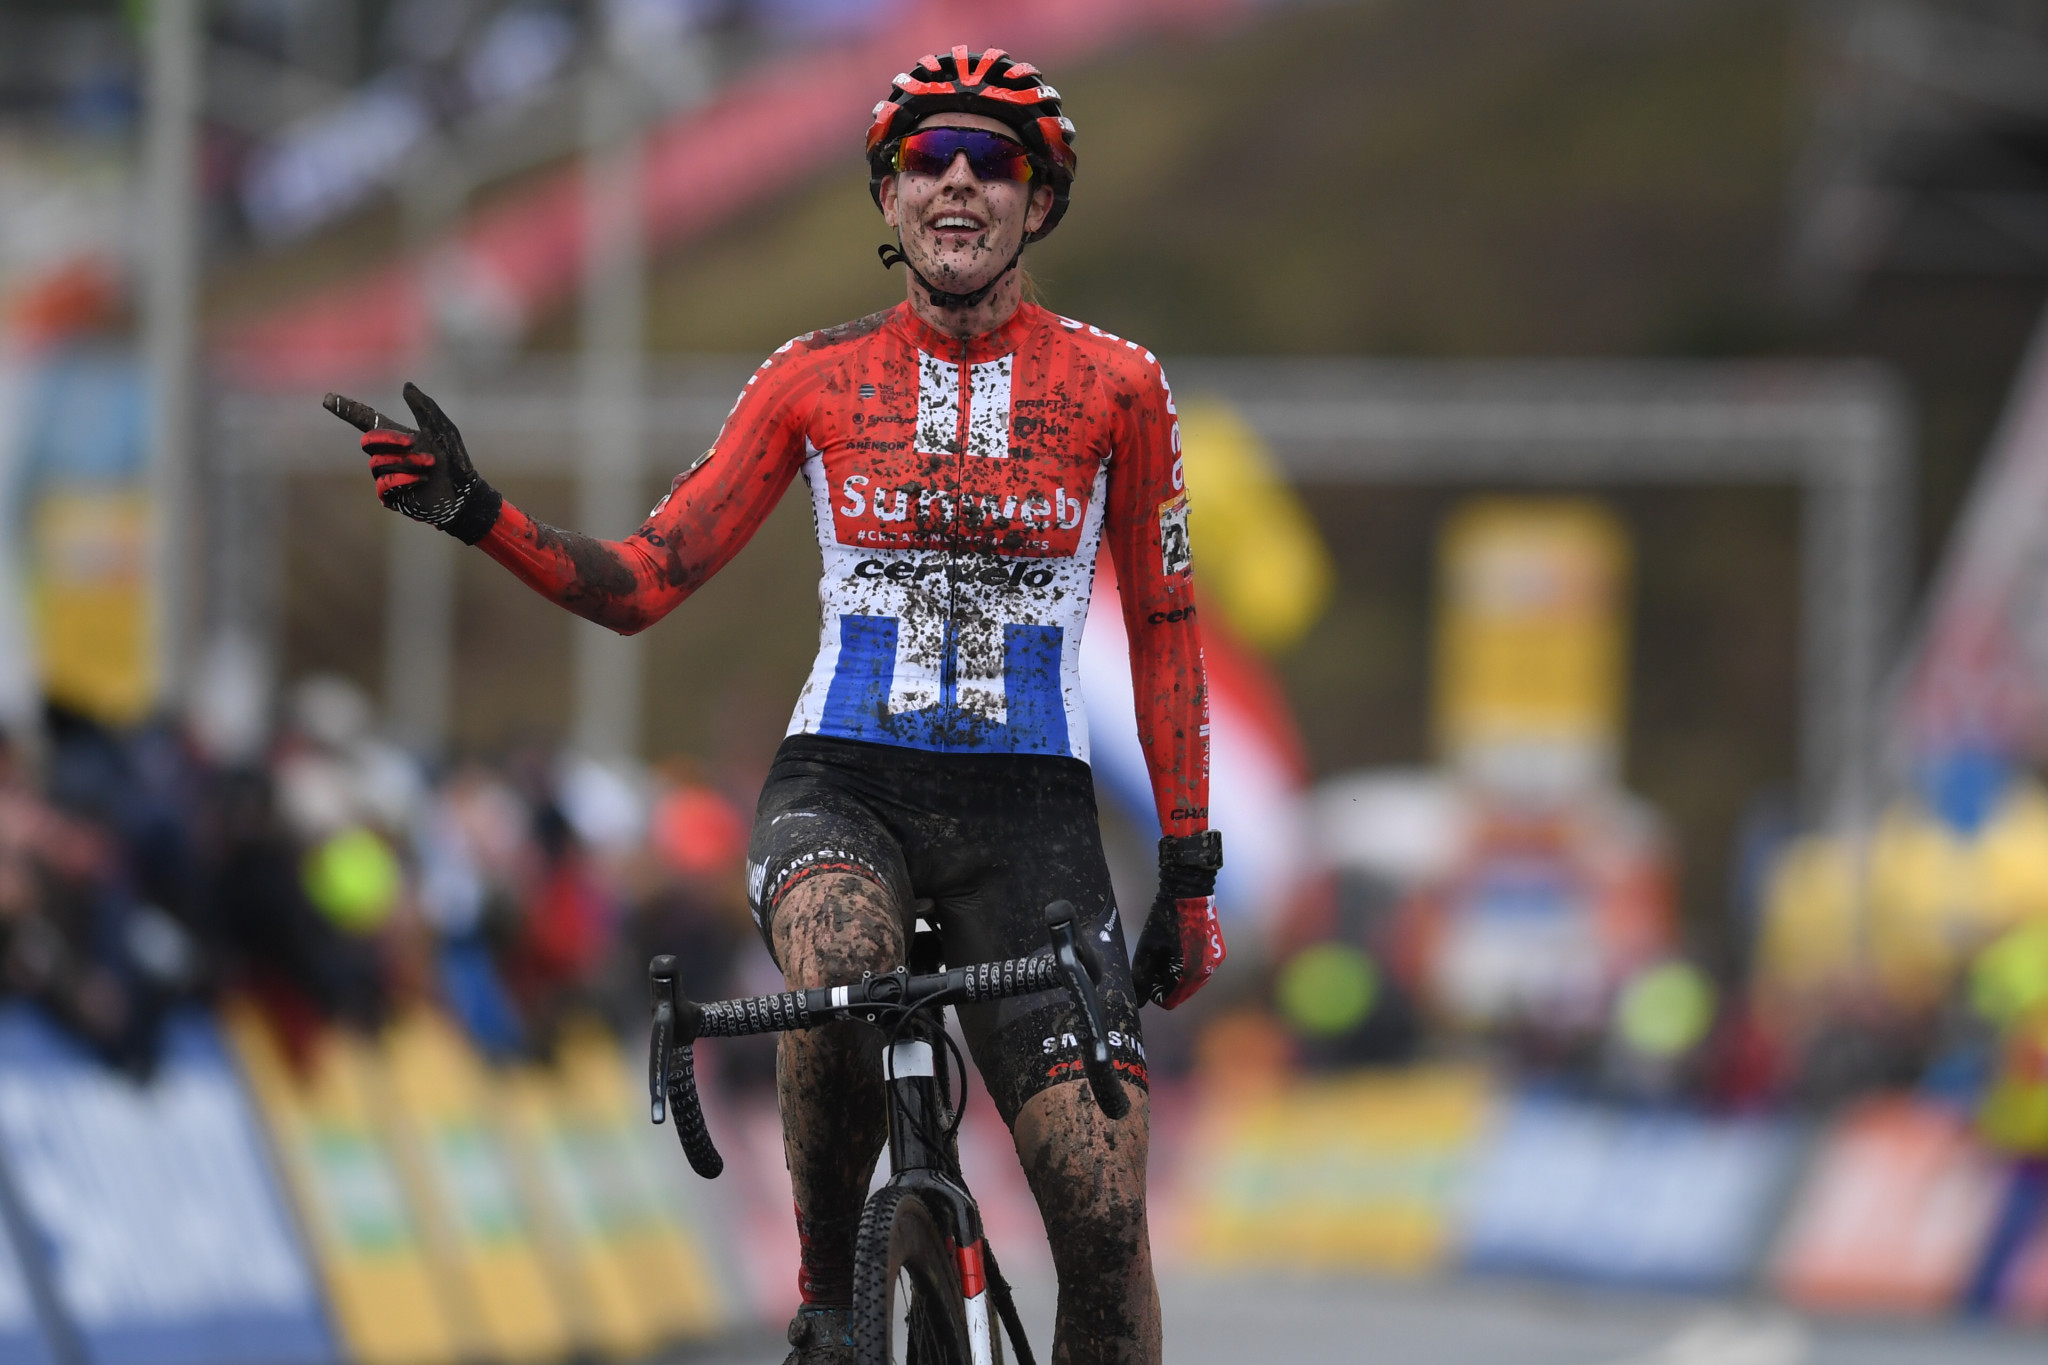 Lucinda Brand claimed her third victory of the season in the women's race ©Getty Images